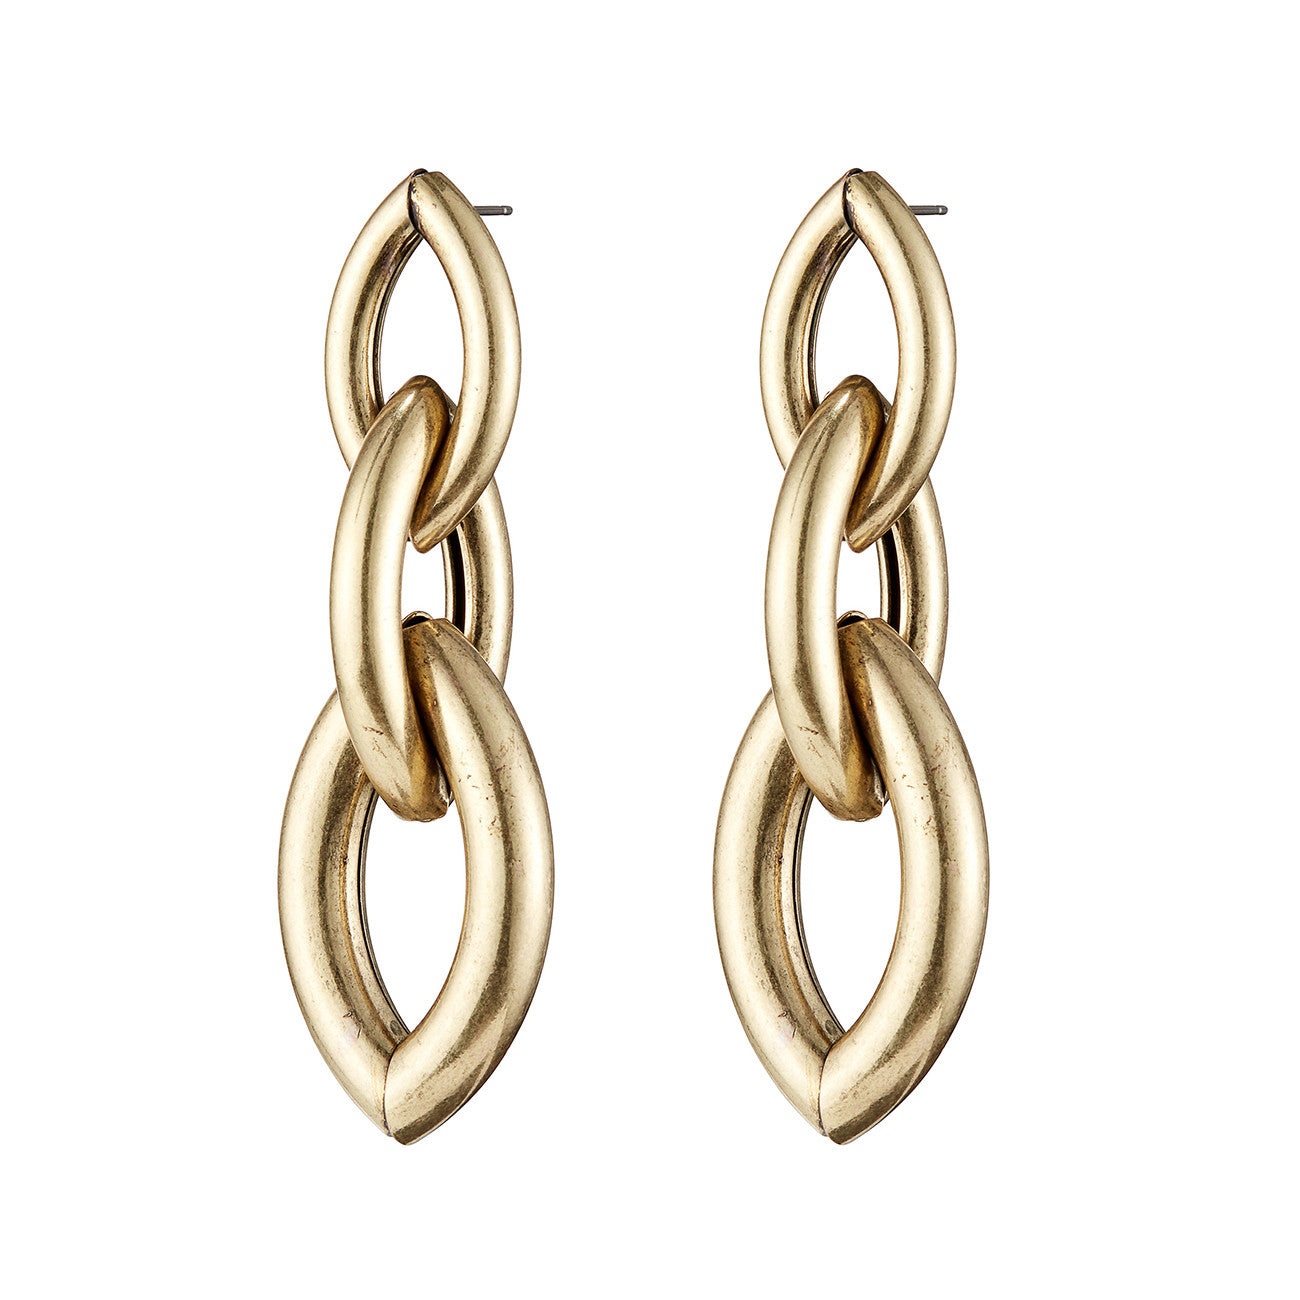 Sloane Earrings by Jenny Bird in Oxidized Gold